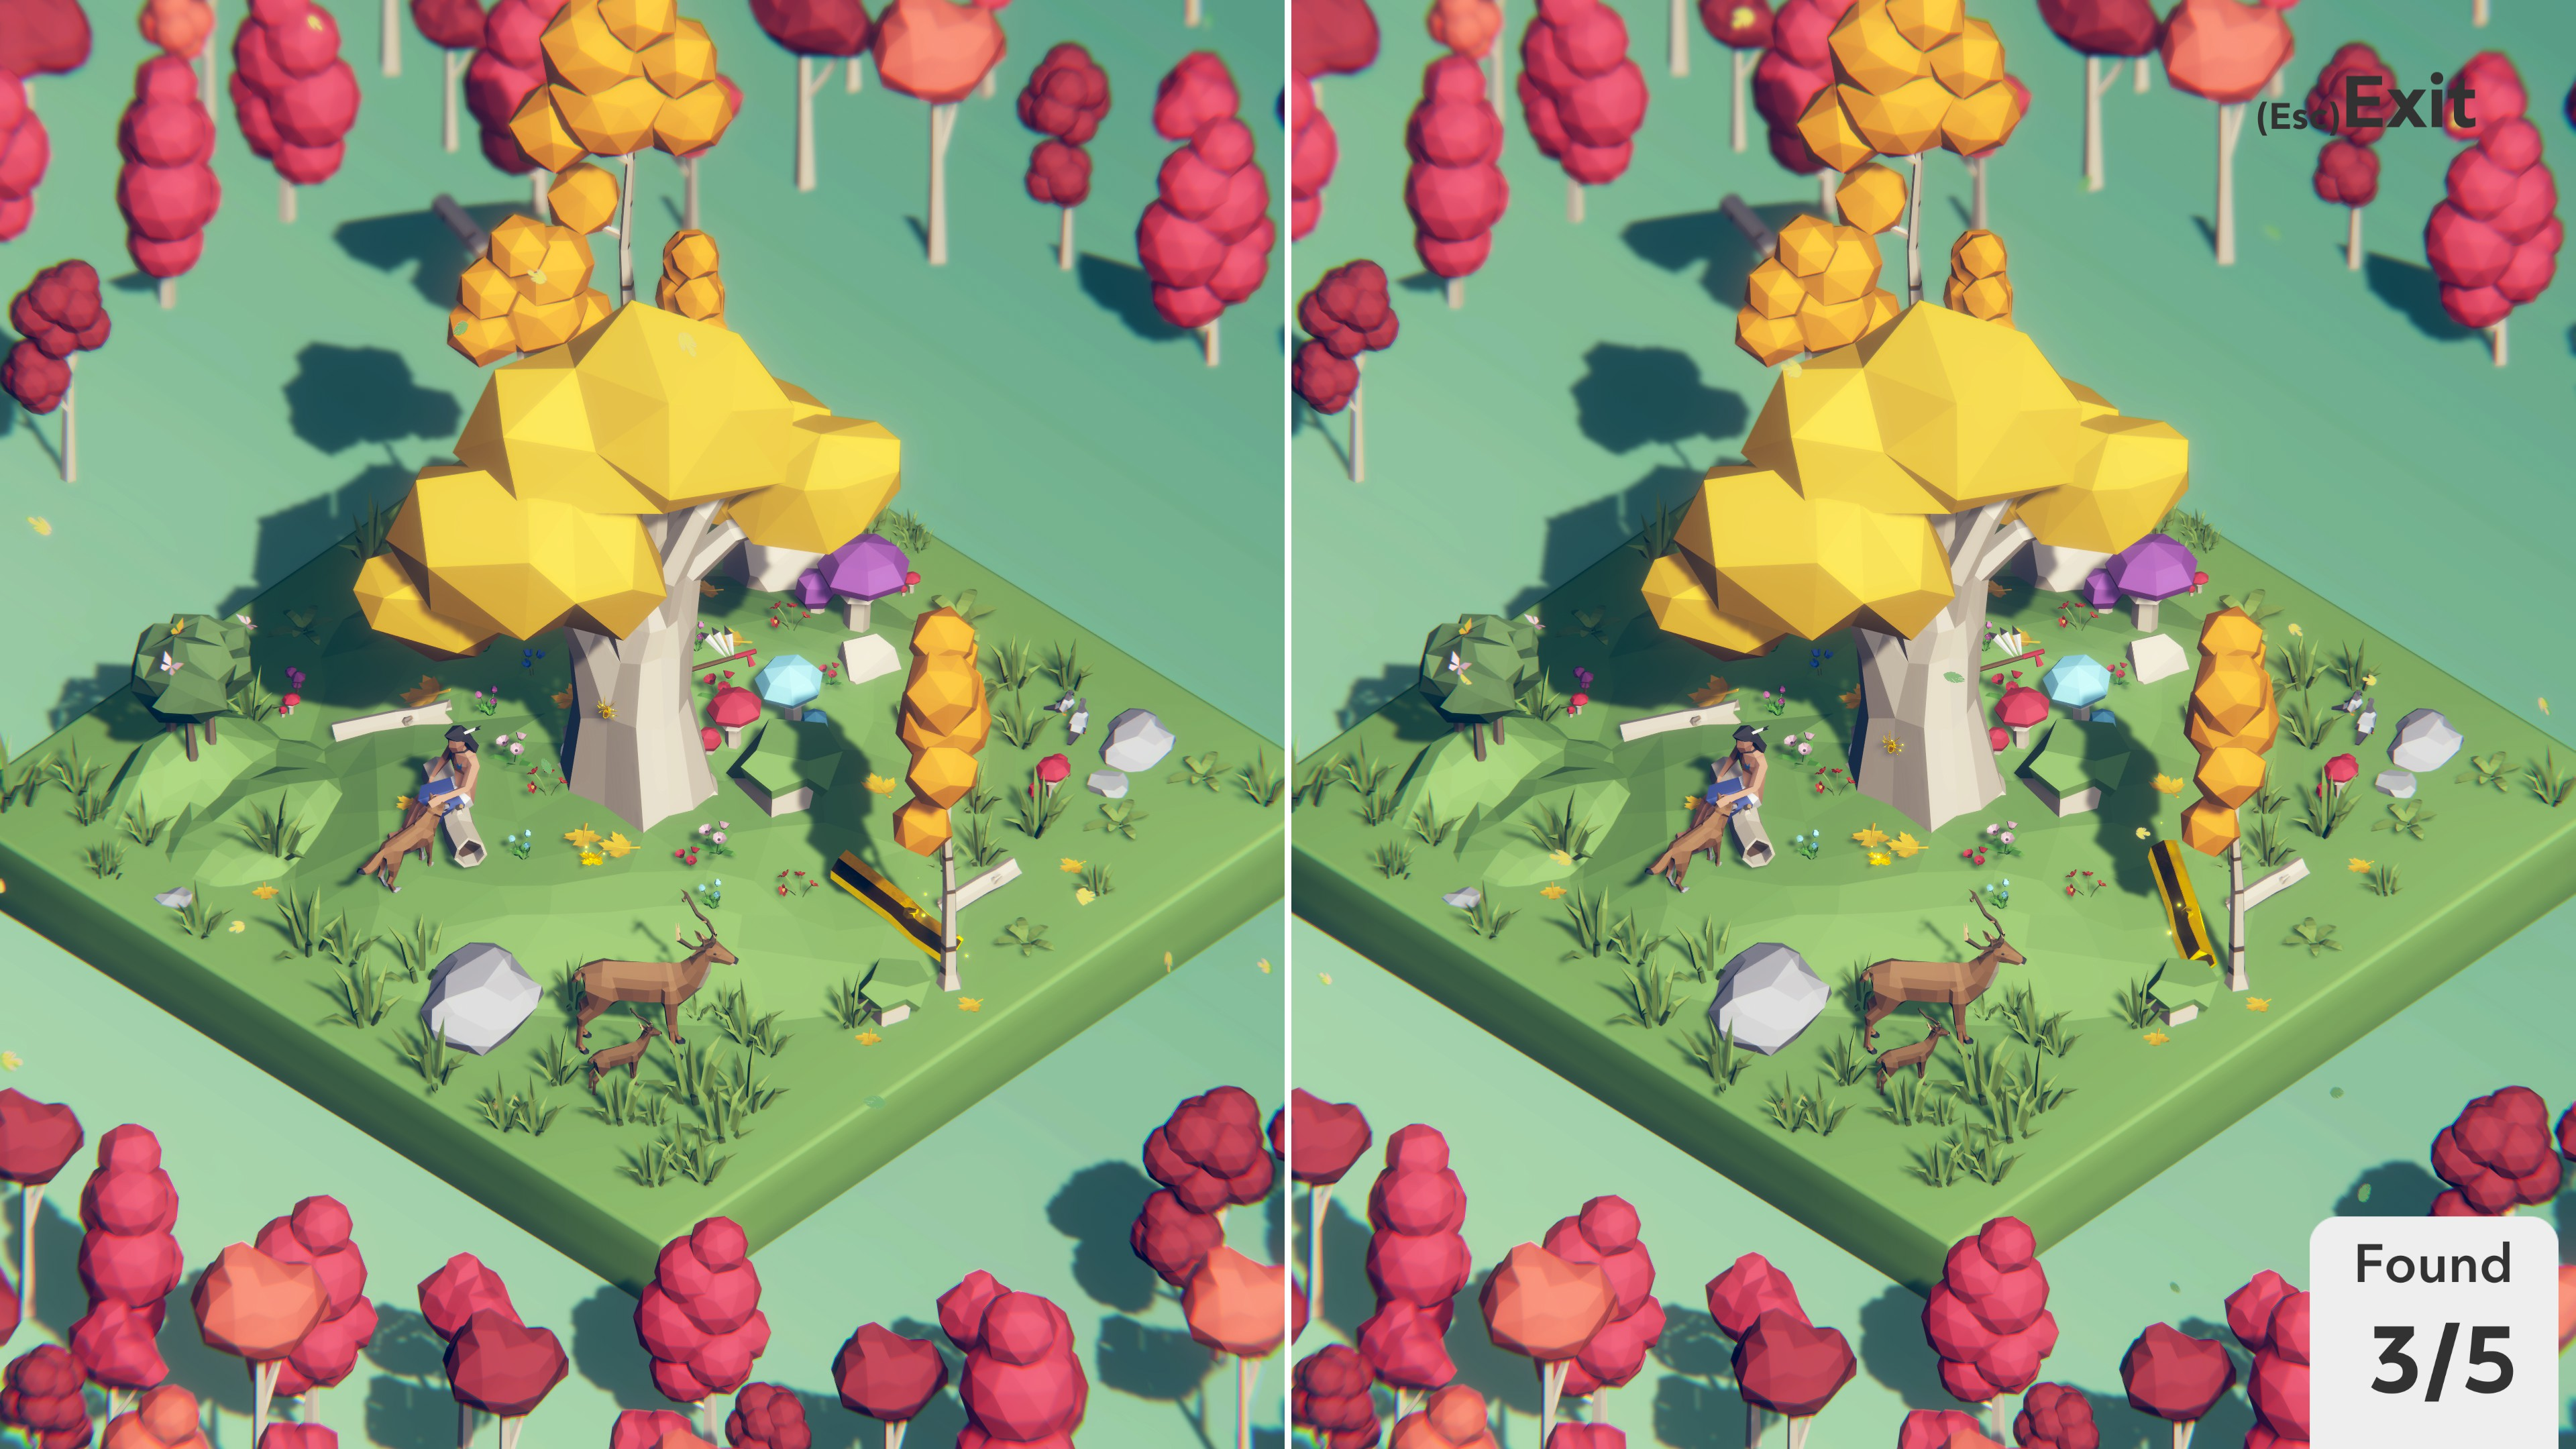 Tiny Lands. Person number a tree petting a dog. A father and baby deer are nearby. The trees are colored for fall and bright mushrooms are beneath the largest tree. 3 out of 5 differences have been found.